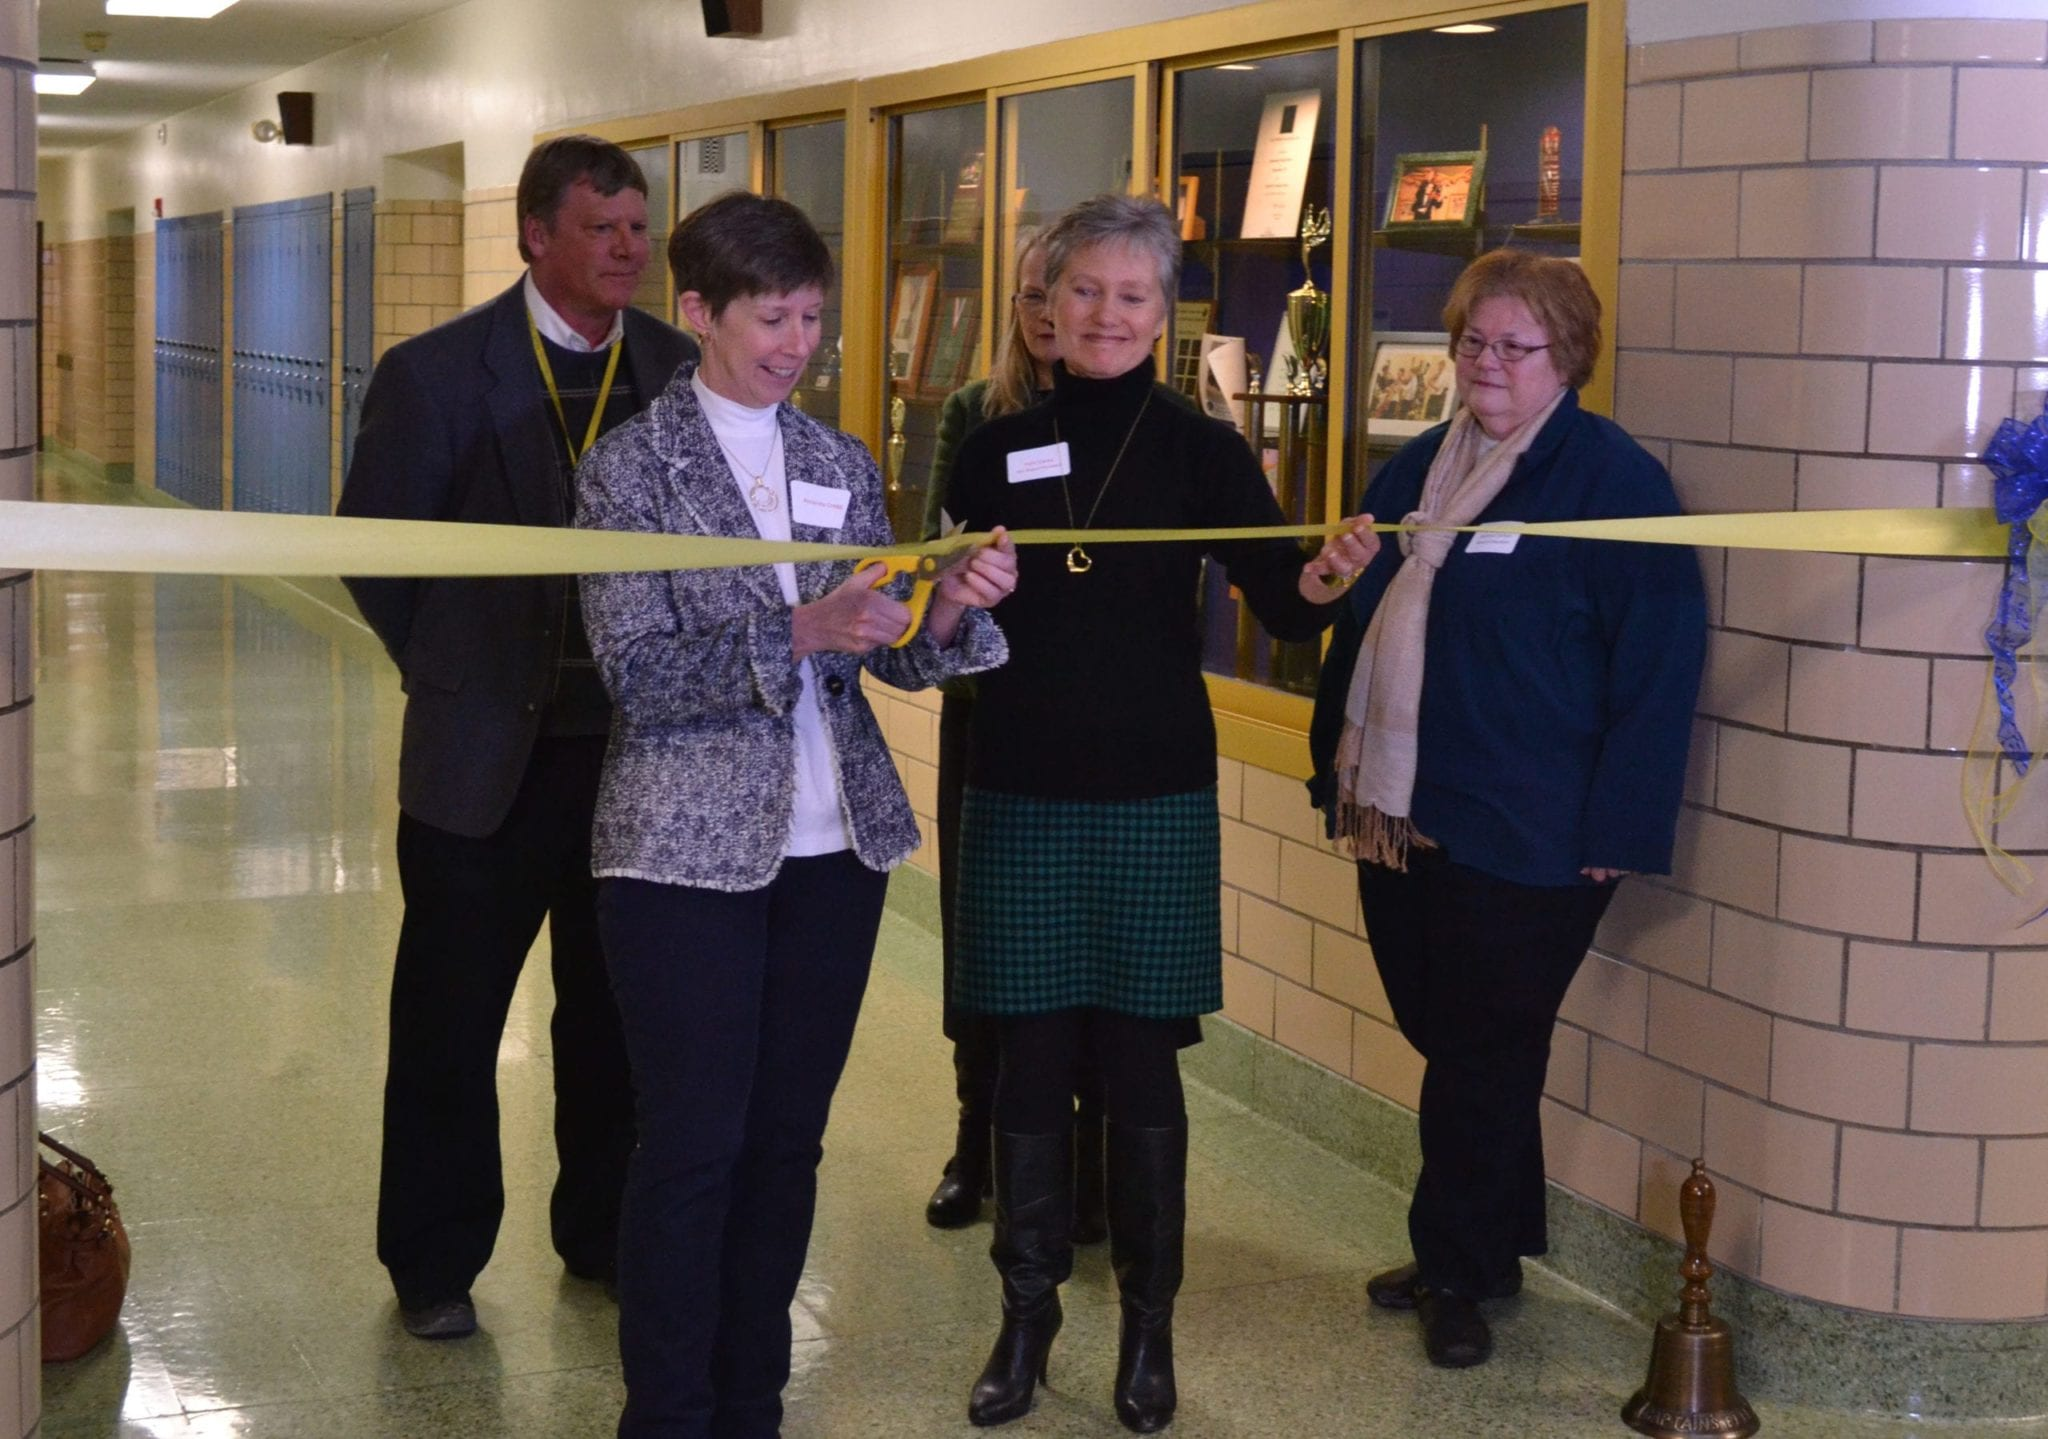 Skaneateles schools, community celebrate new high school technology lab